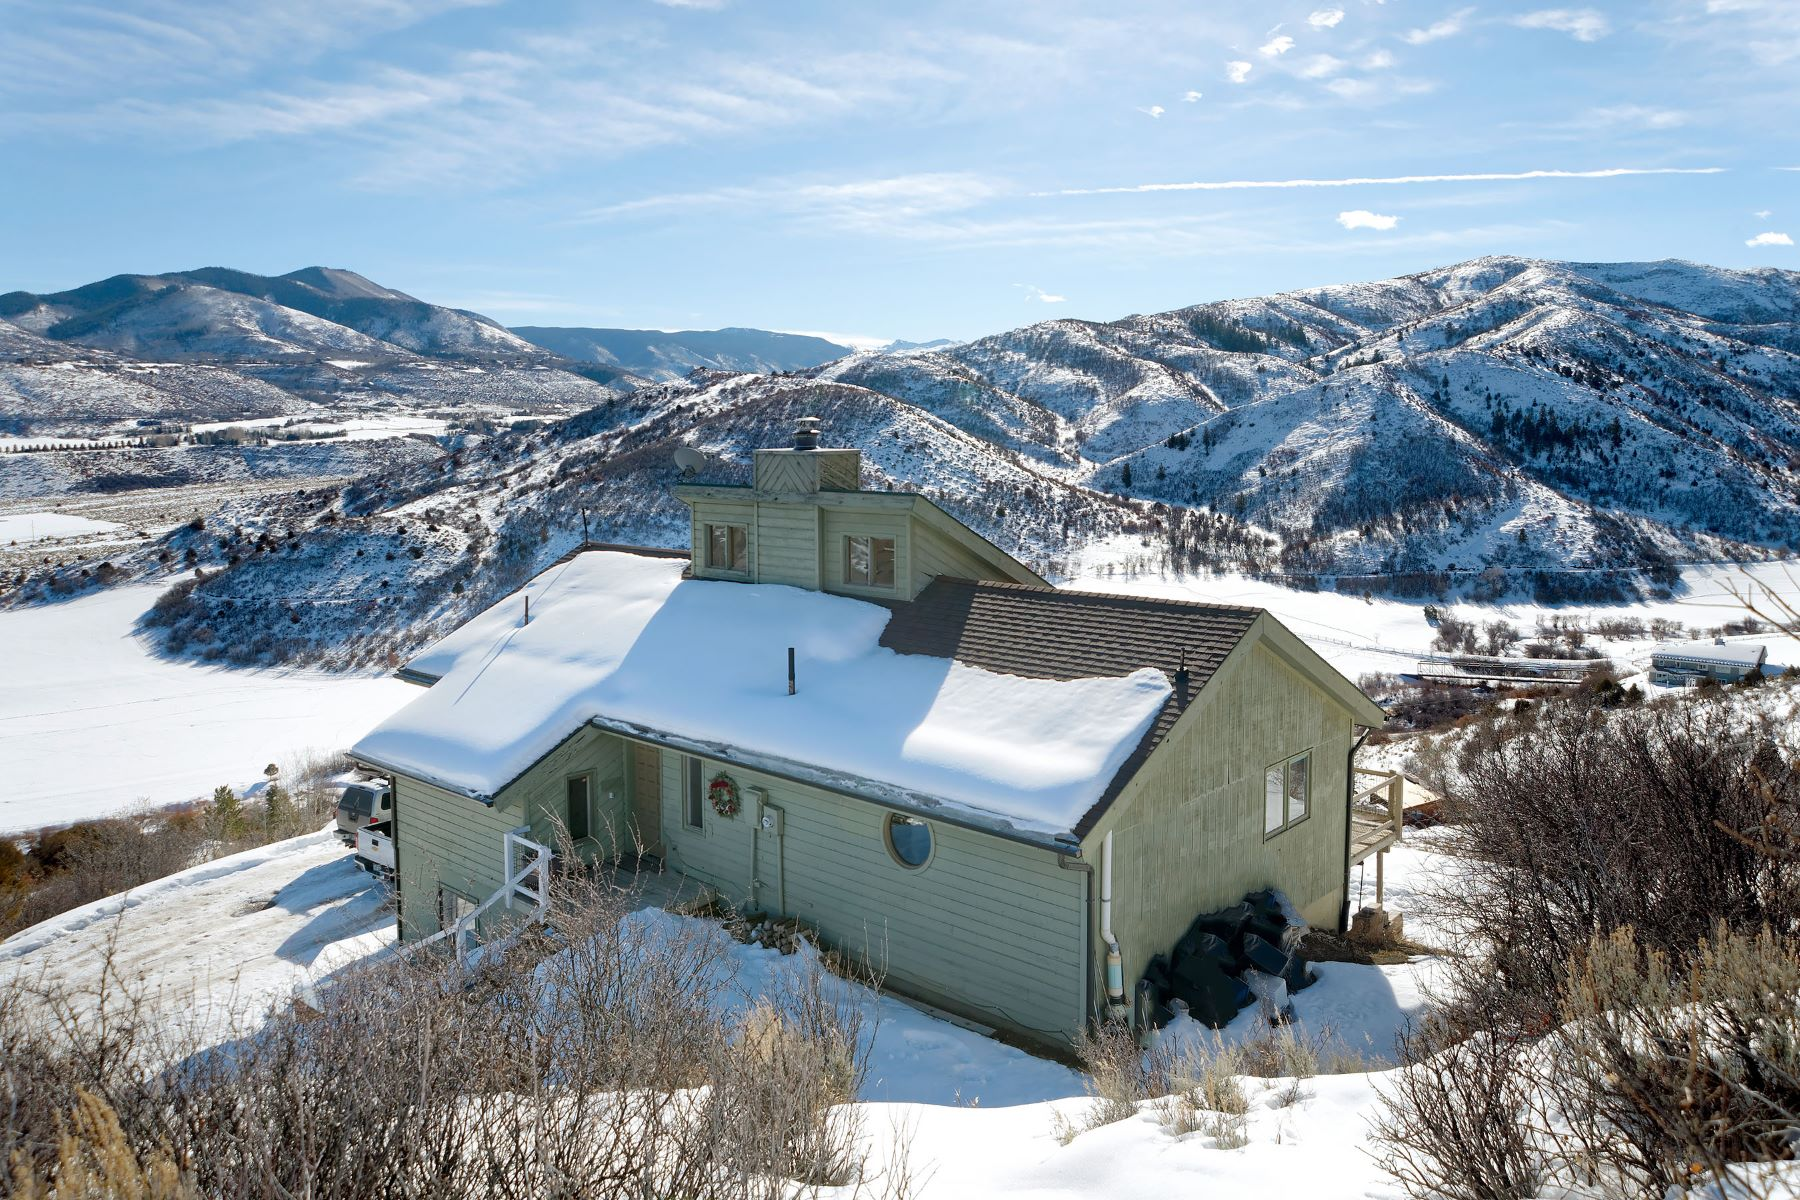 단독 가정 주택 용 매매 에 Panoramic Elk Mountain Views from Lenado to Snowmass 91 Solar Way Aspen, 콜로라도, 81611 미국